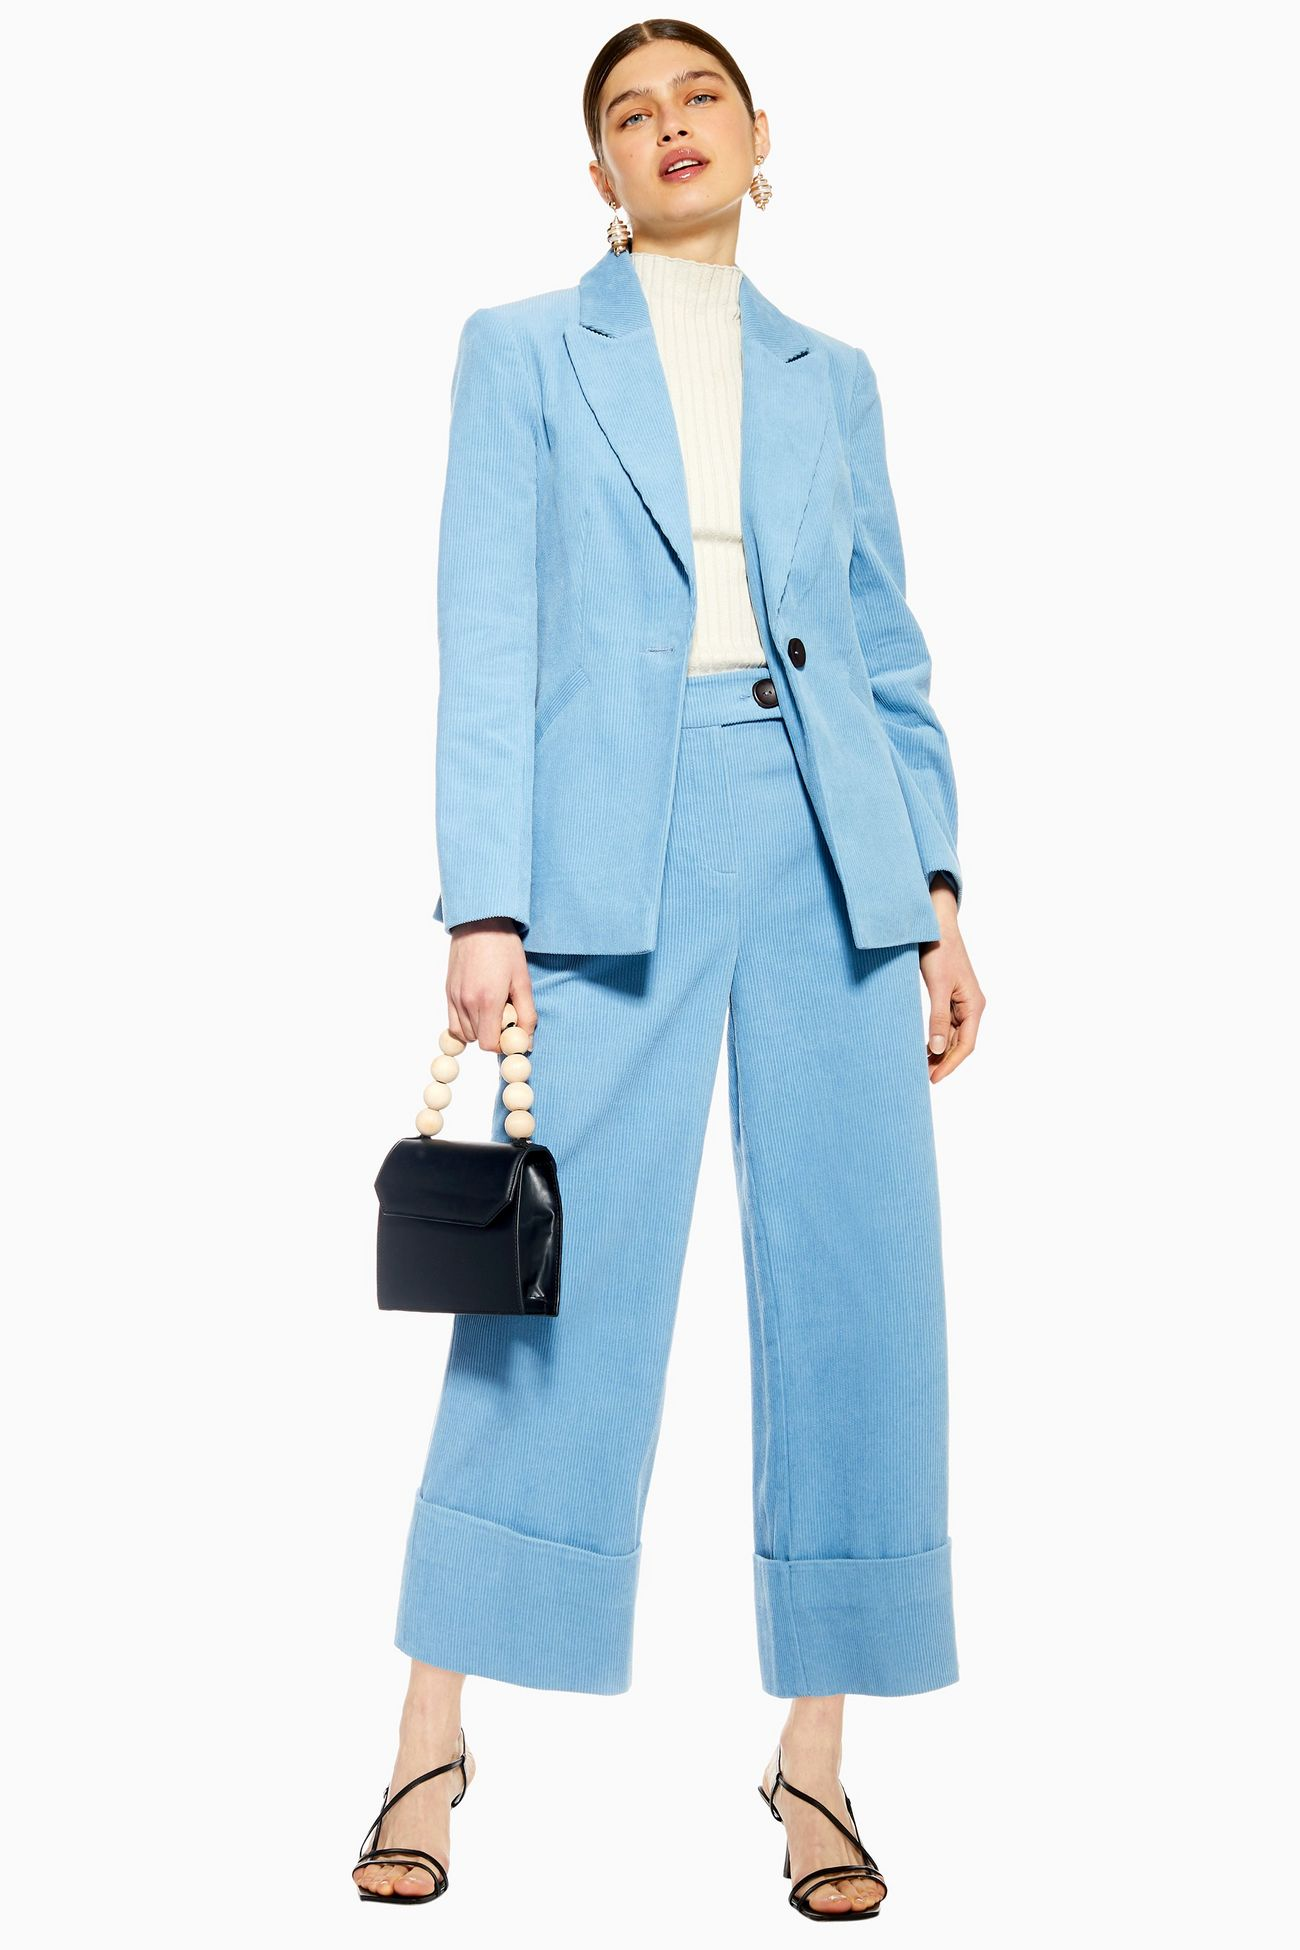 Topshop Blue Suit.jpg